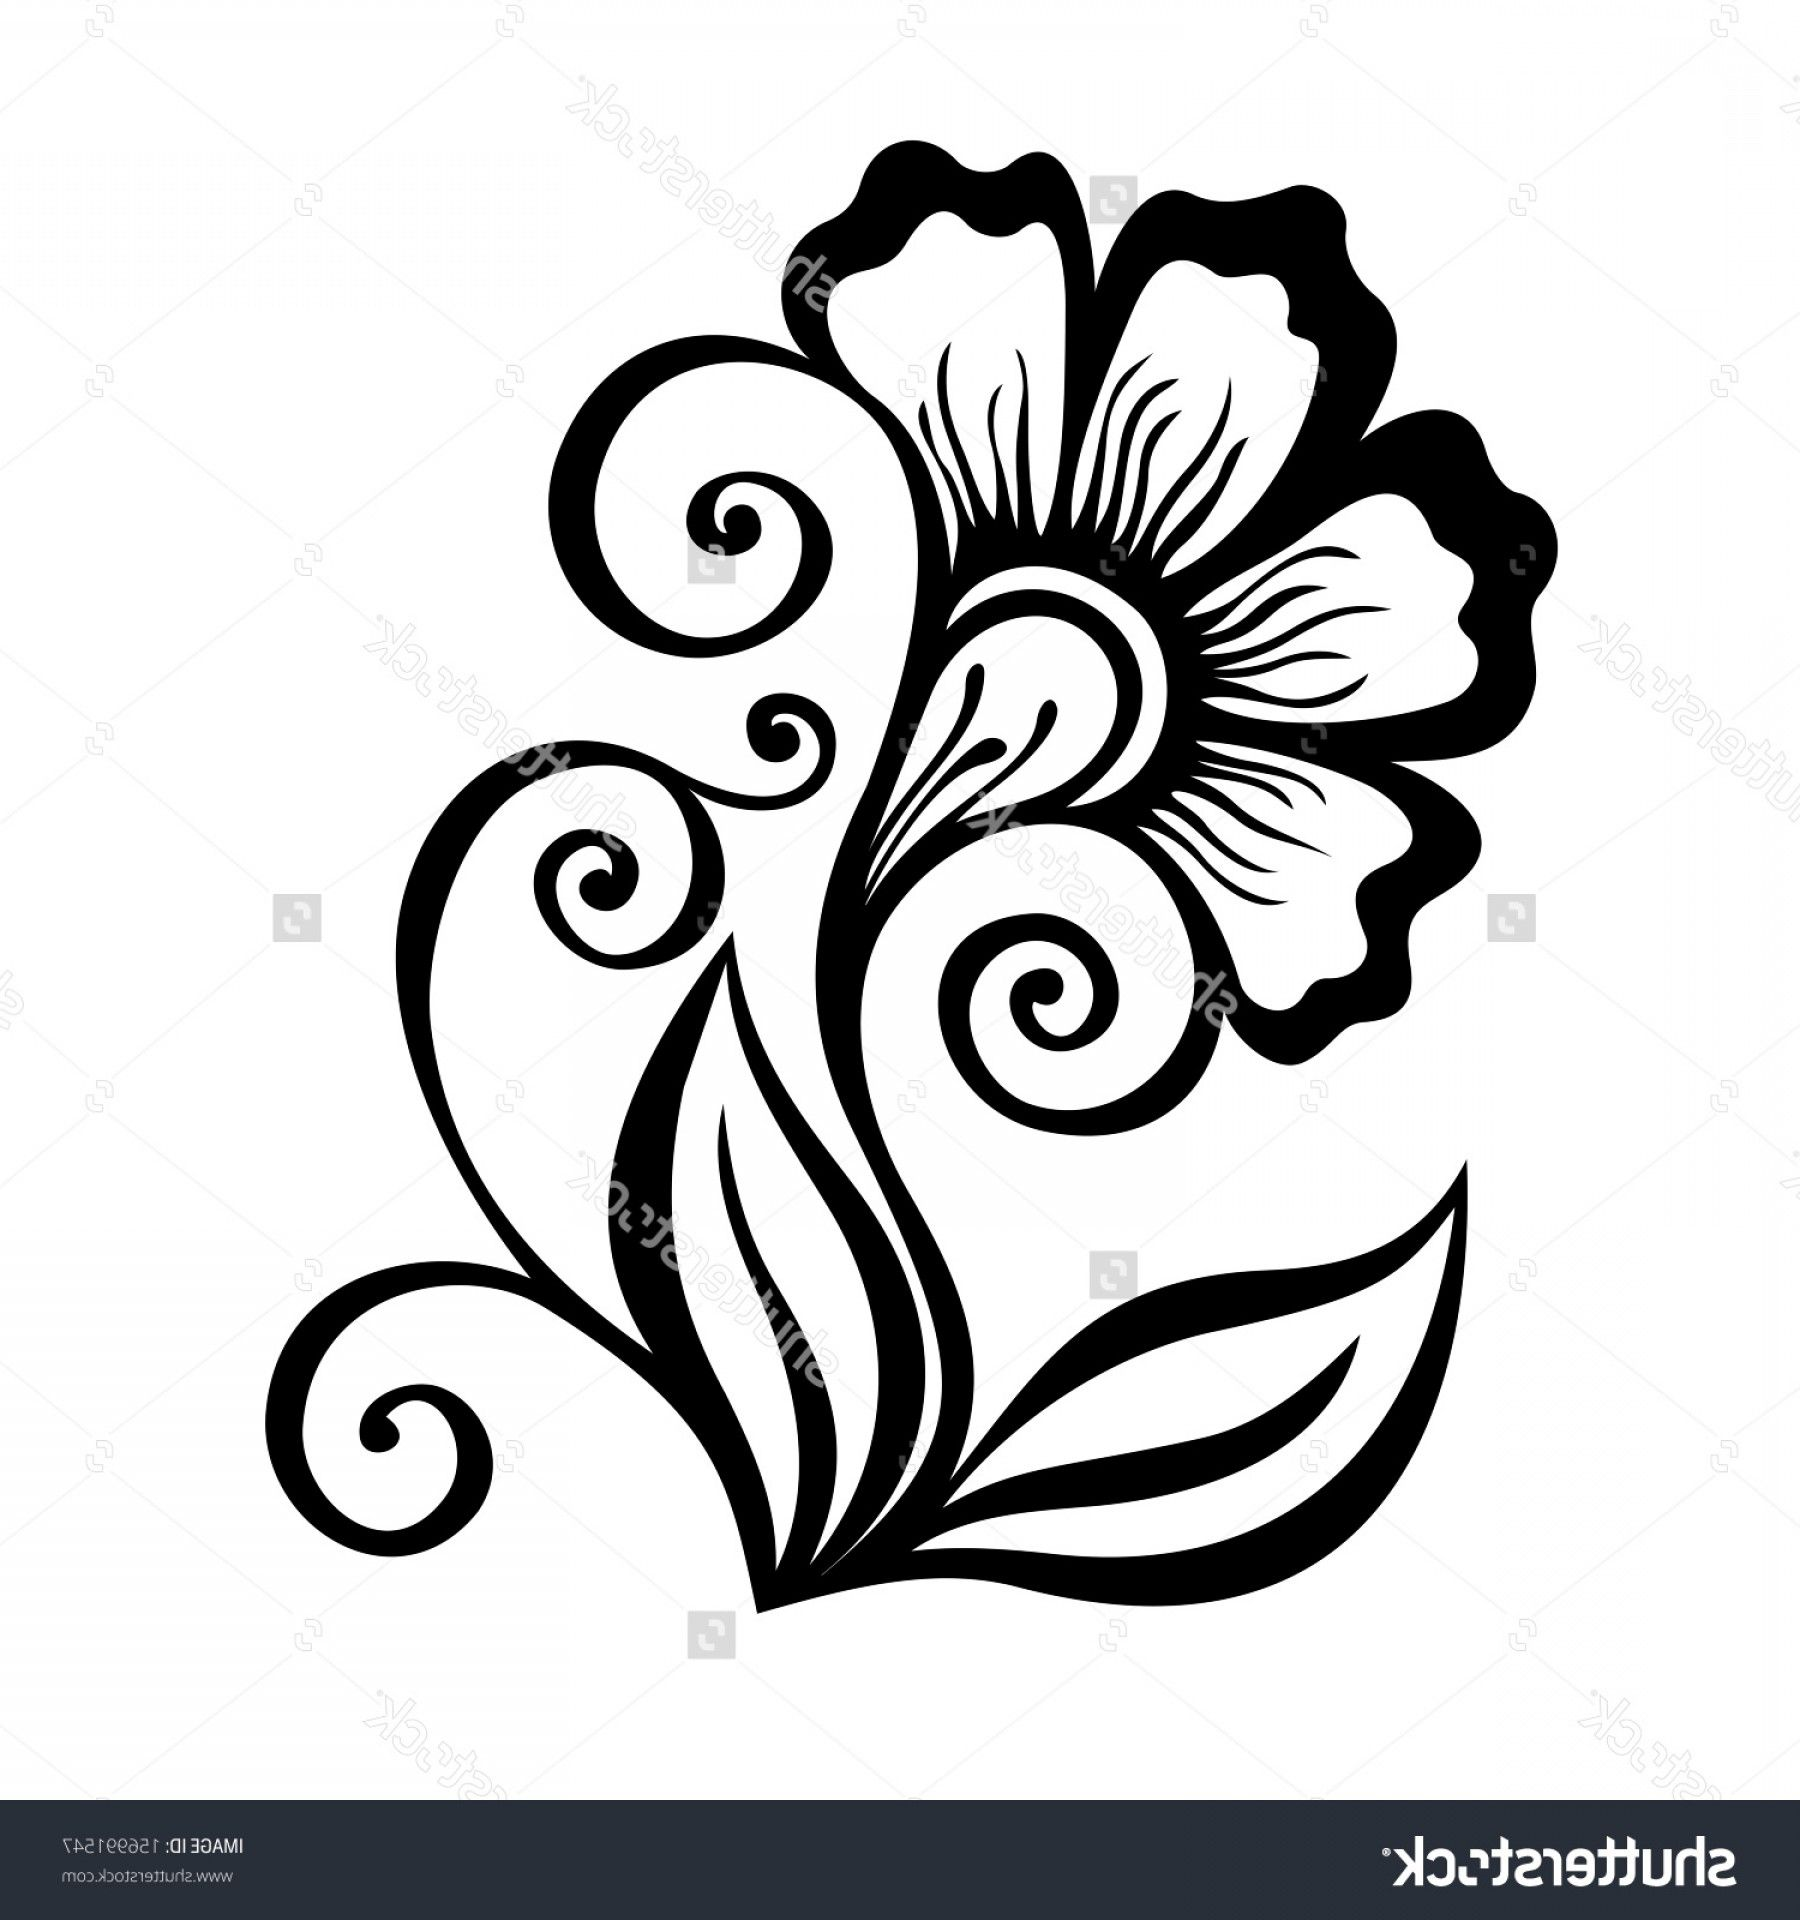 Simple Designs Of Flowers For Drawing Simple Flower Drawing Designs Flower Drawings Flowers Dr Flower Drawing Design Simple Flower Drawing Simple Flower Design